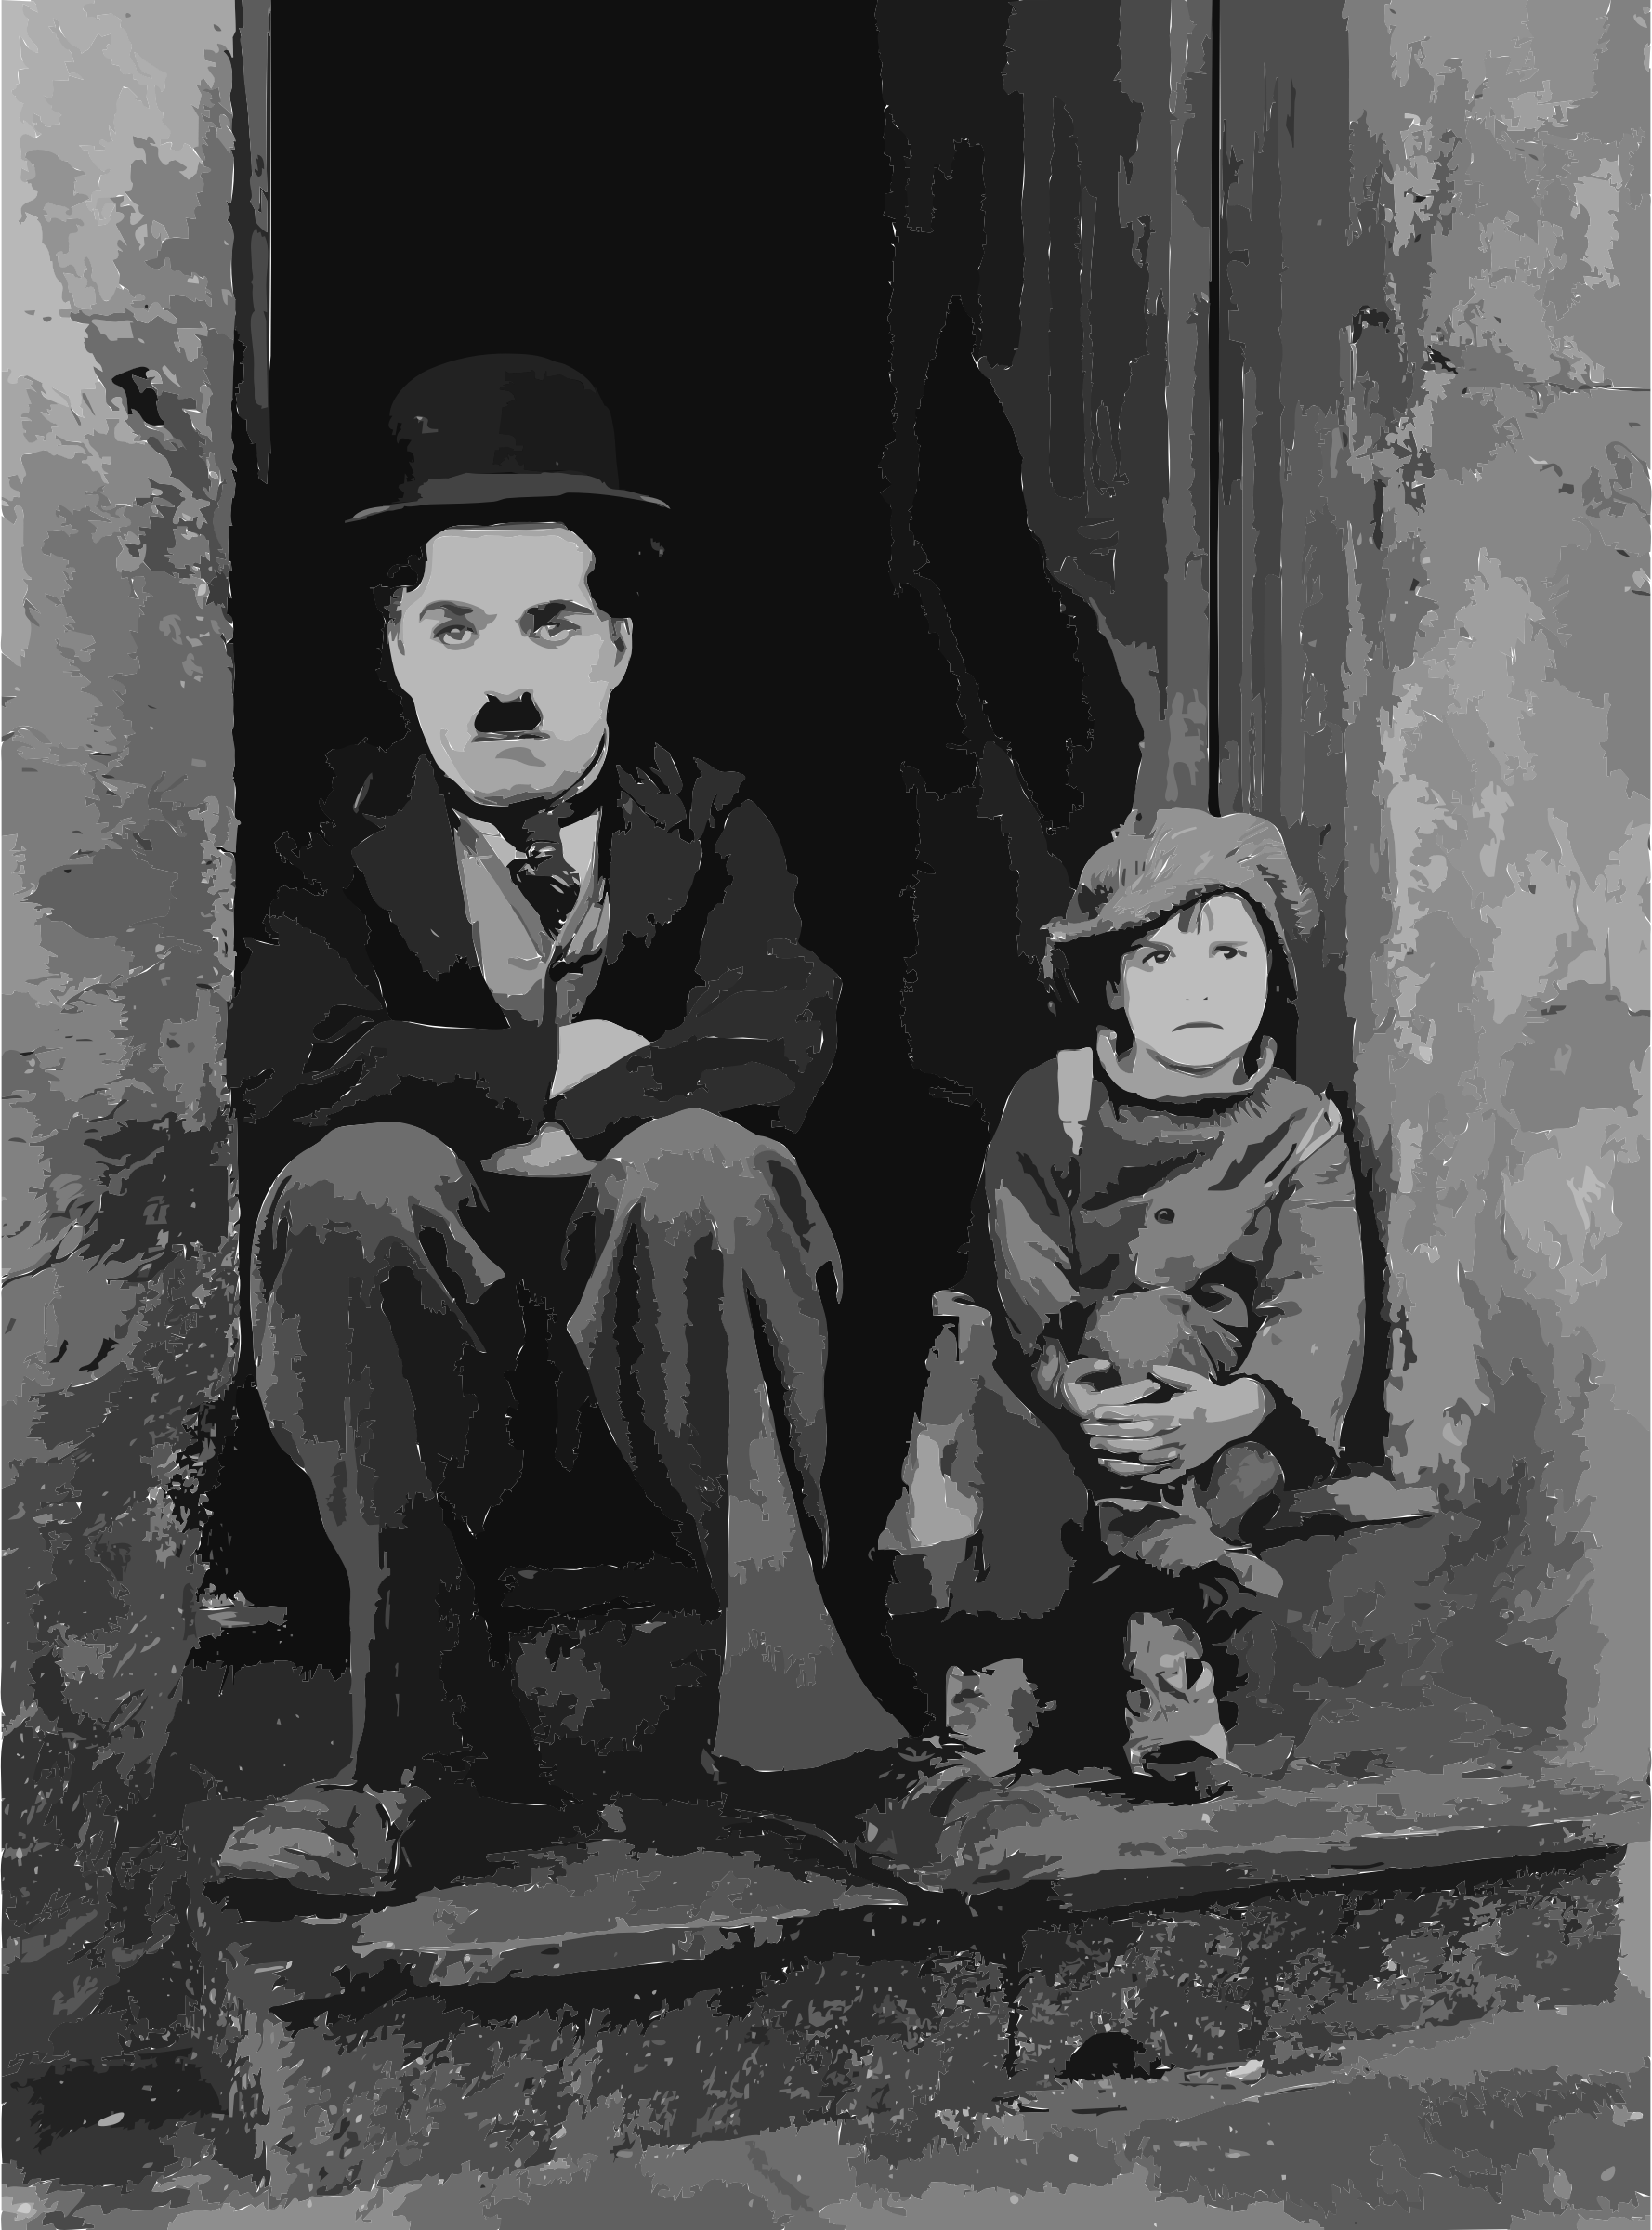 Chaplin The Kid edit by 5nbz3a+45jqtl07aorc